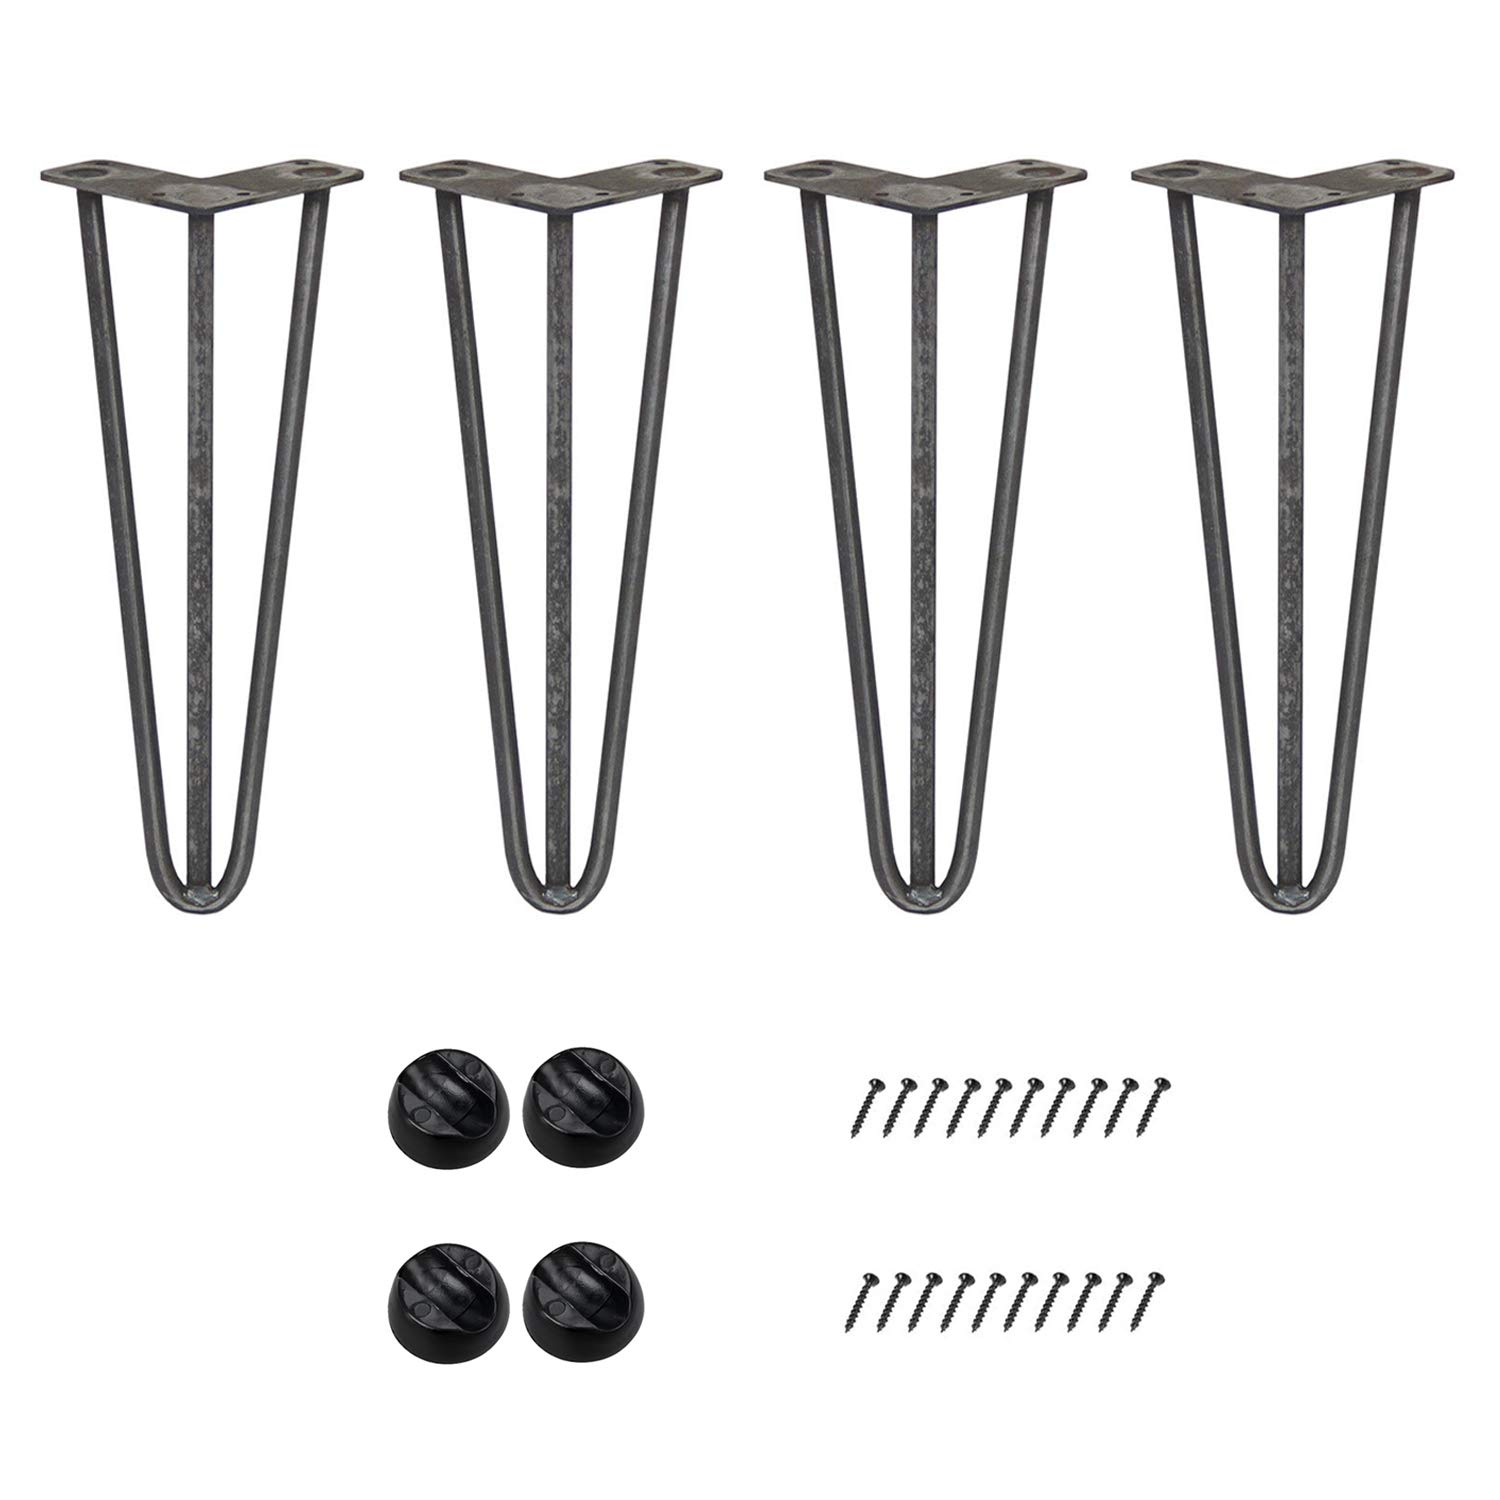 Raw 14 Inch Bronkey 4PCS Vintage Industrial Style Hairpin Legs, 4  Three Rods 3 8  Solid Bar Construction Design, Black Steel Metal Heavy Duty Table Leg, for DIY Living Room TV Stand Sofa Coffee Shop Decoration